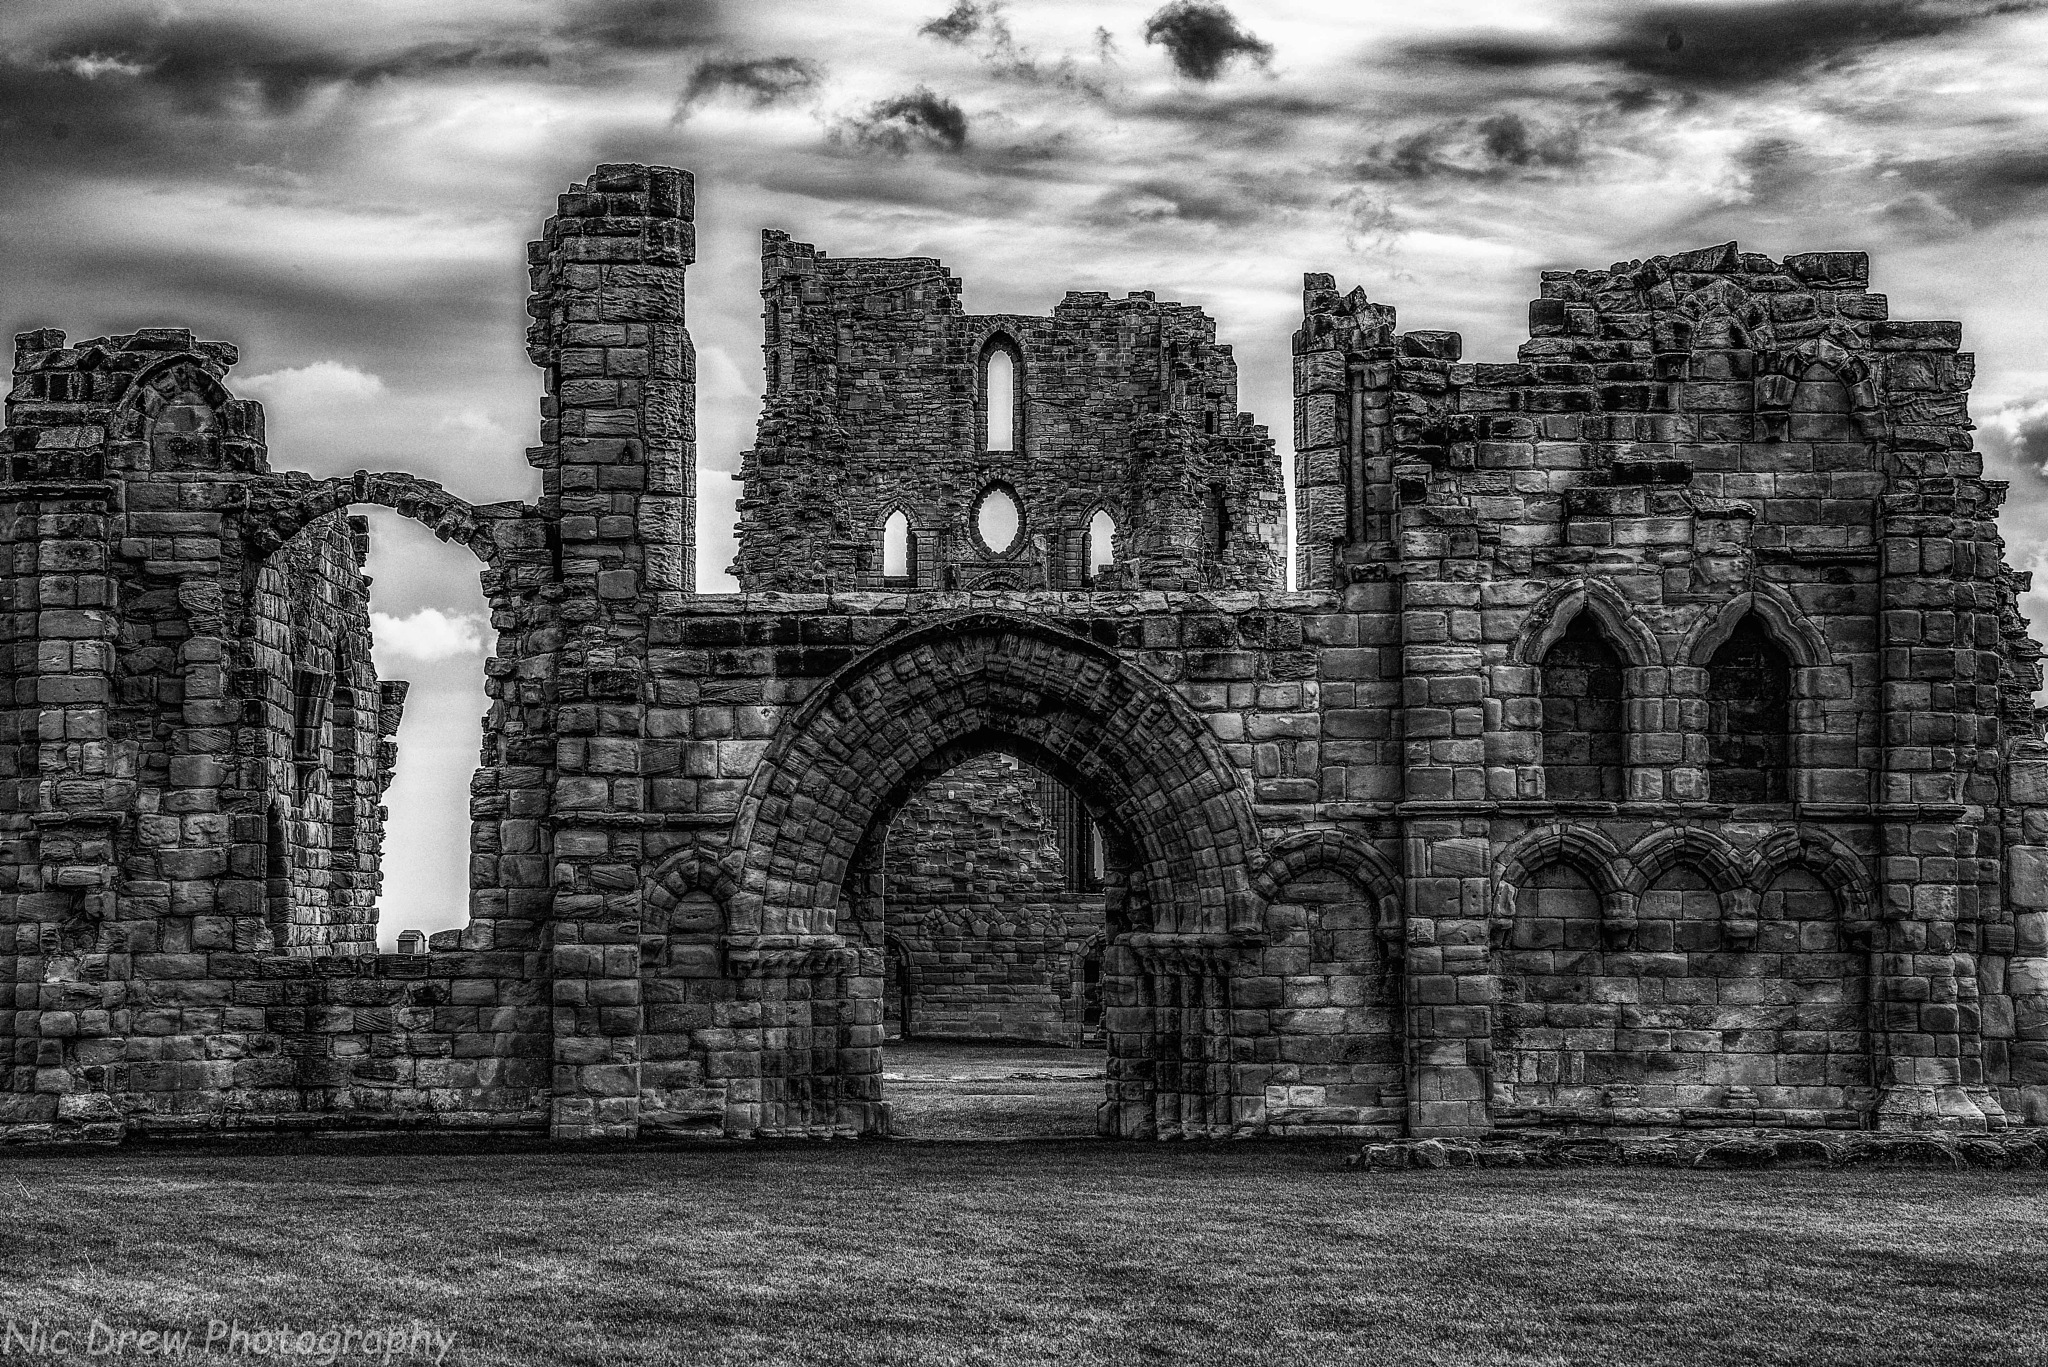 Abbey ruins by Nic Drew